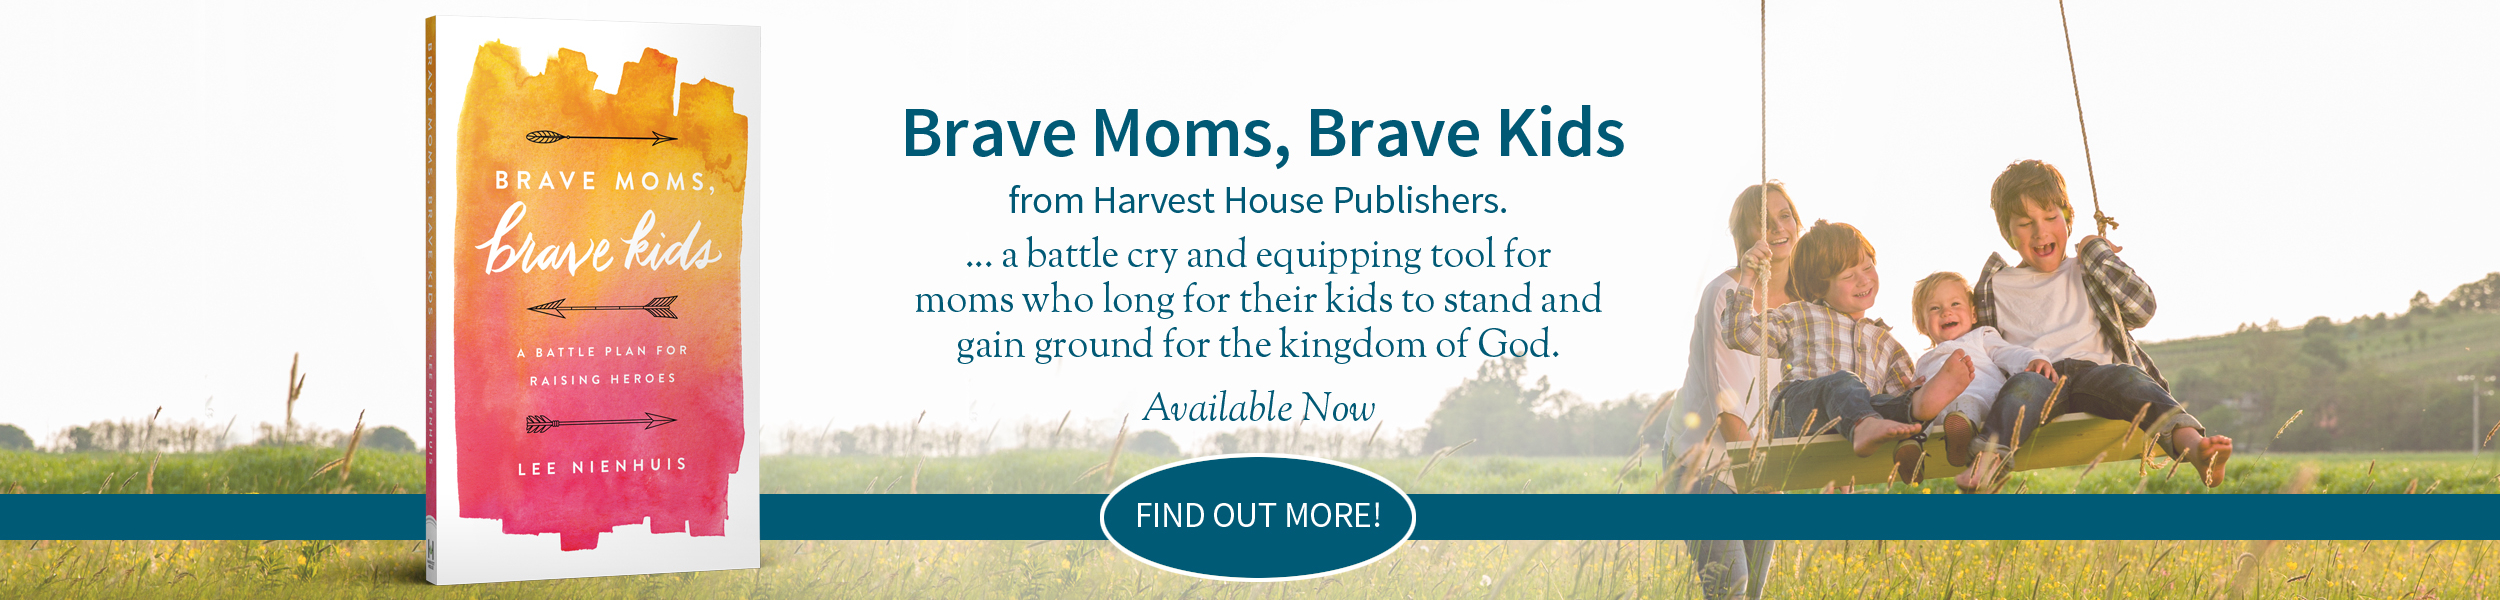 Lee Nienhuis - Brave Moms, Brave Kids